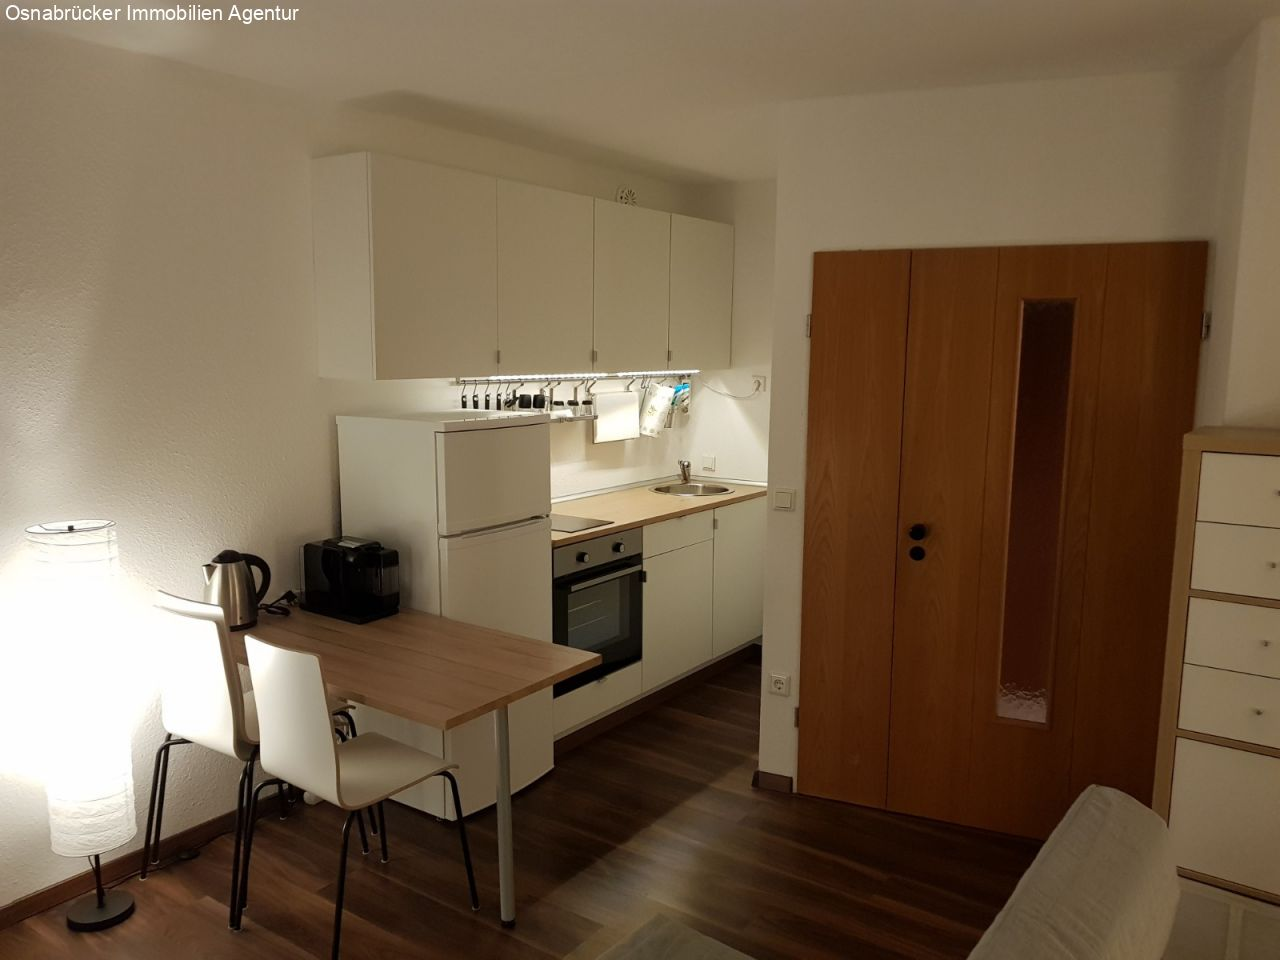 Apartment zweite Etage